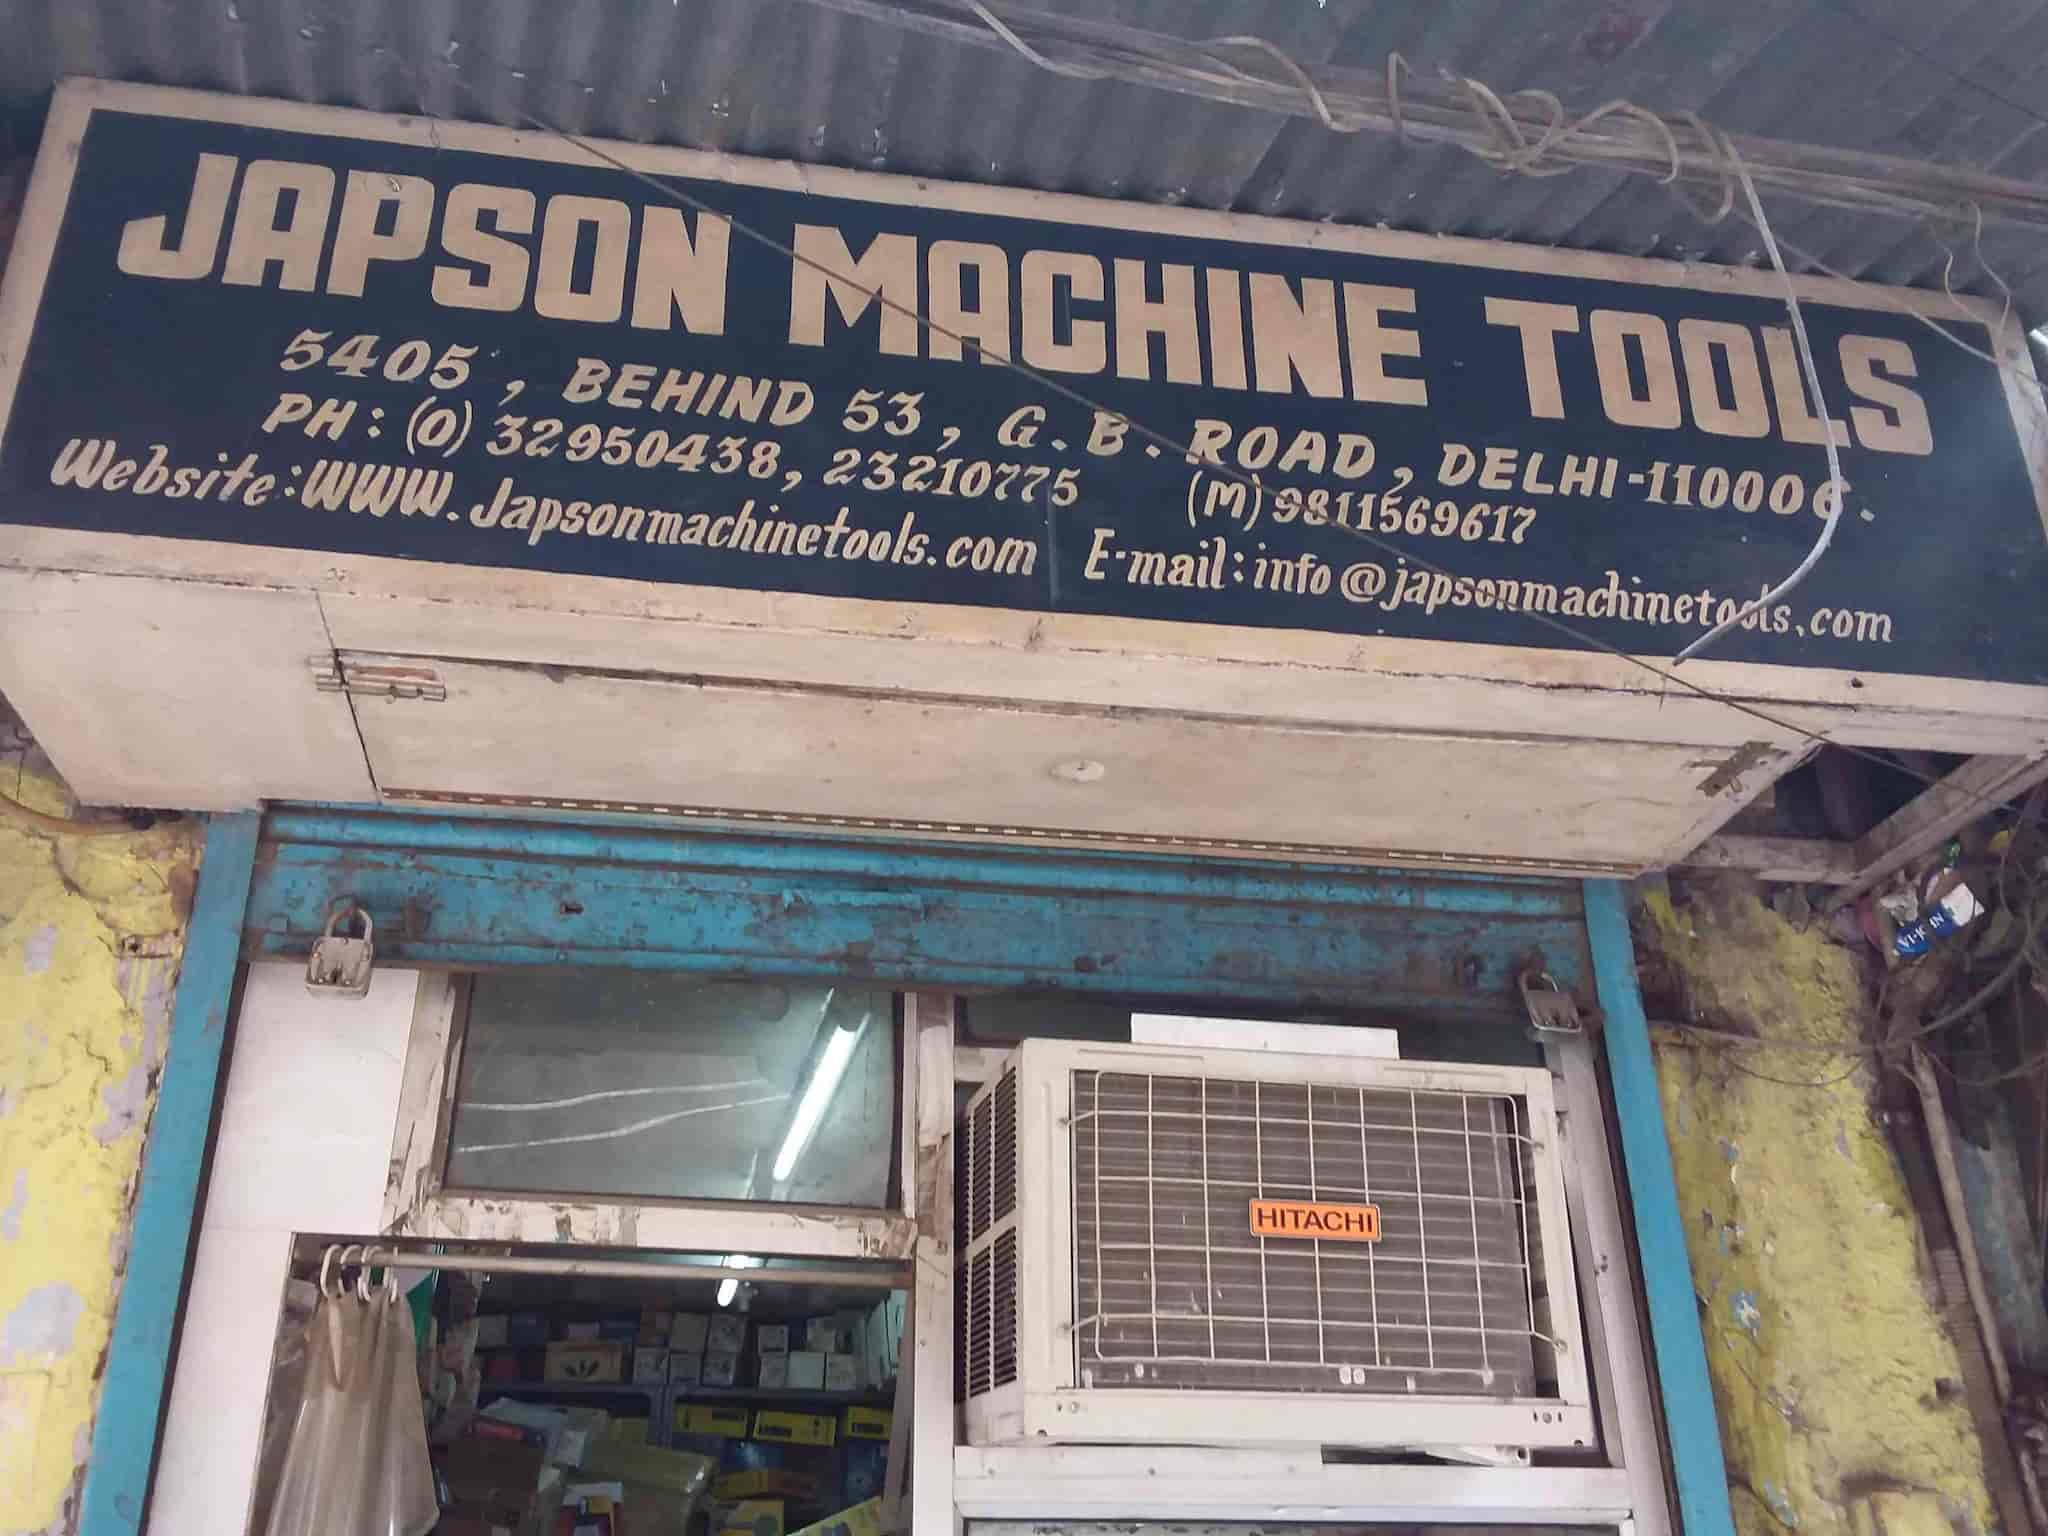 Japson Machine Tools, Gb Road - Drilling Machine Dealers in